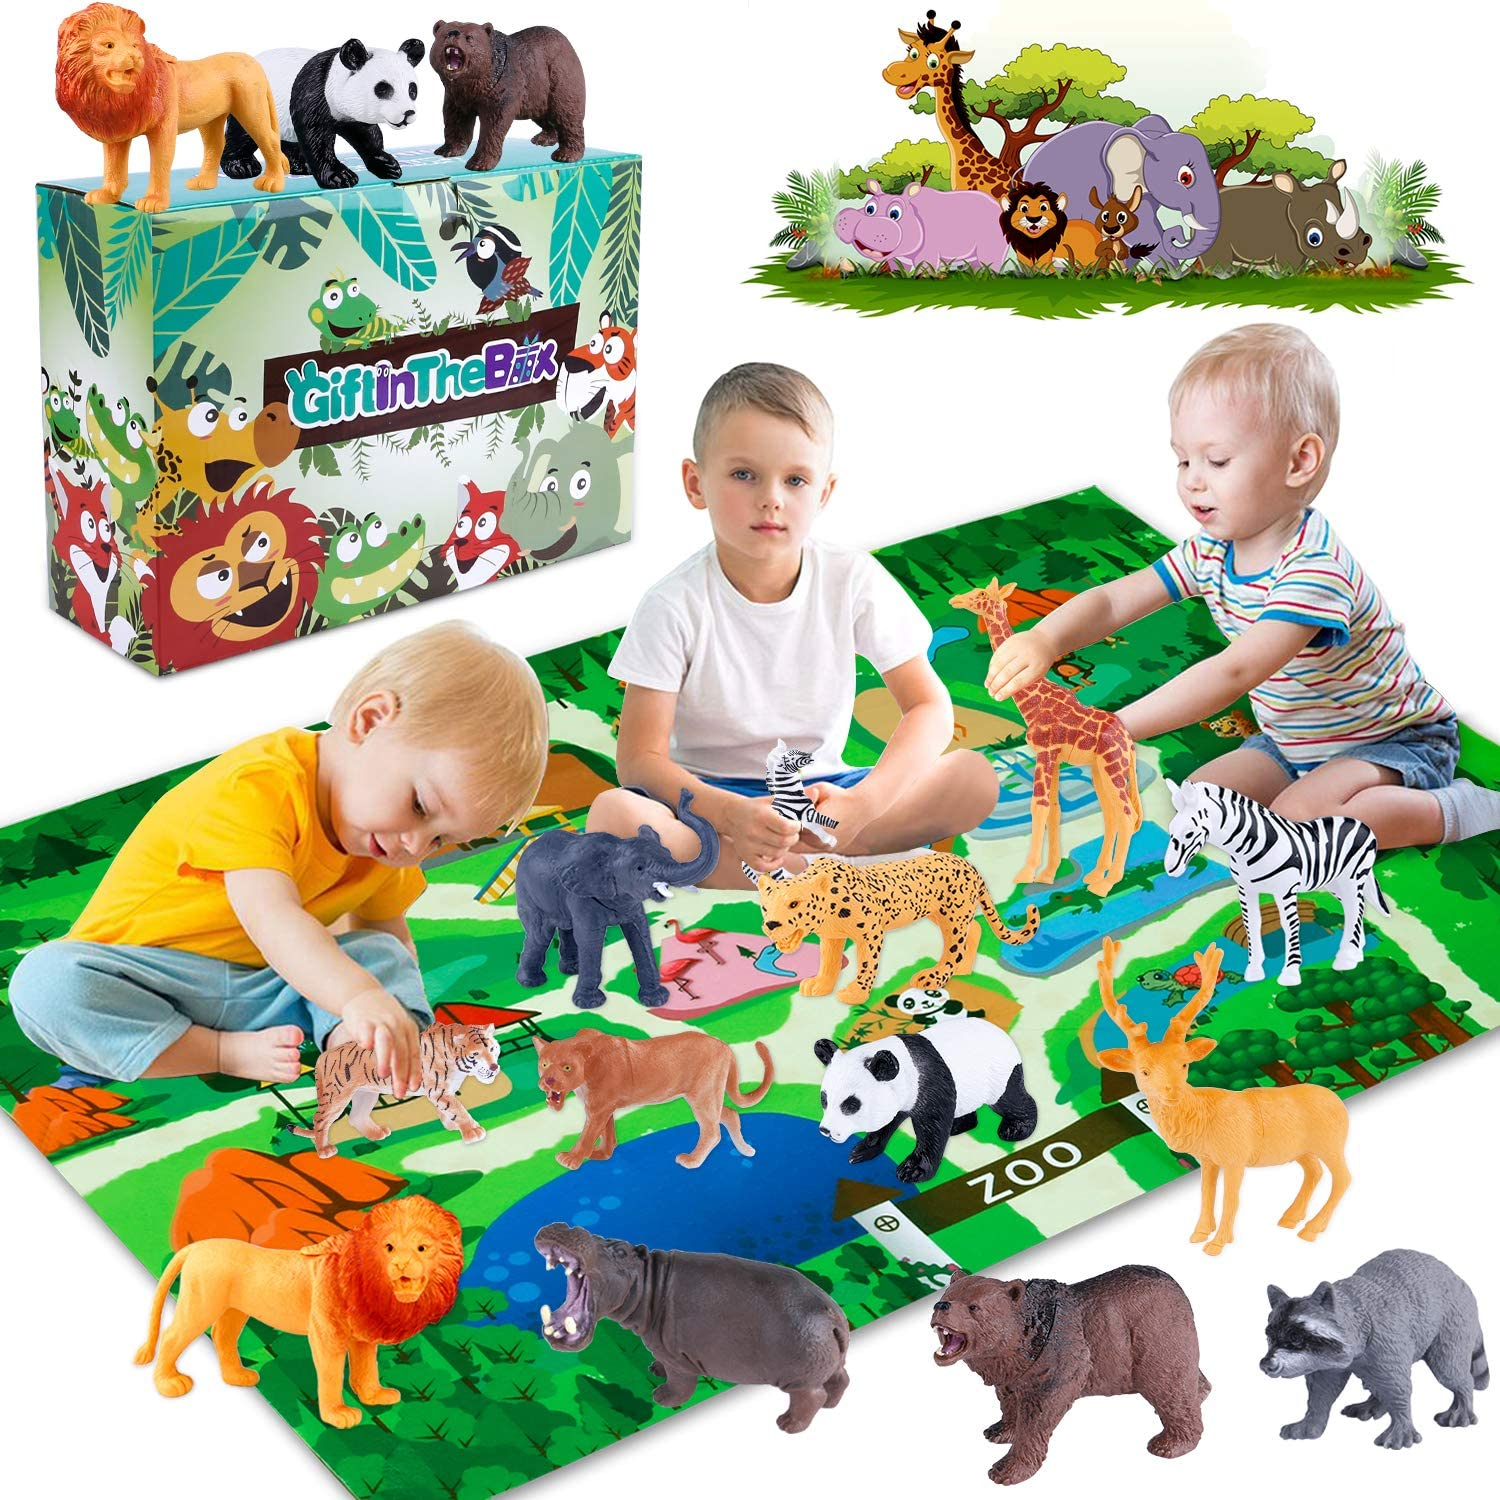 GiftInTheBox Safari Animal Figurines Toys with Activity Play Mat , Realistic Plastic Jungle Wild Zoo Animals Figures Playset with Elephant, Giraffe, Lion, Panda,Gift for Kids, Boys …: Toys & Games